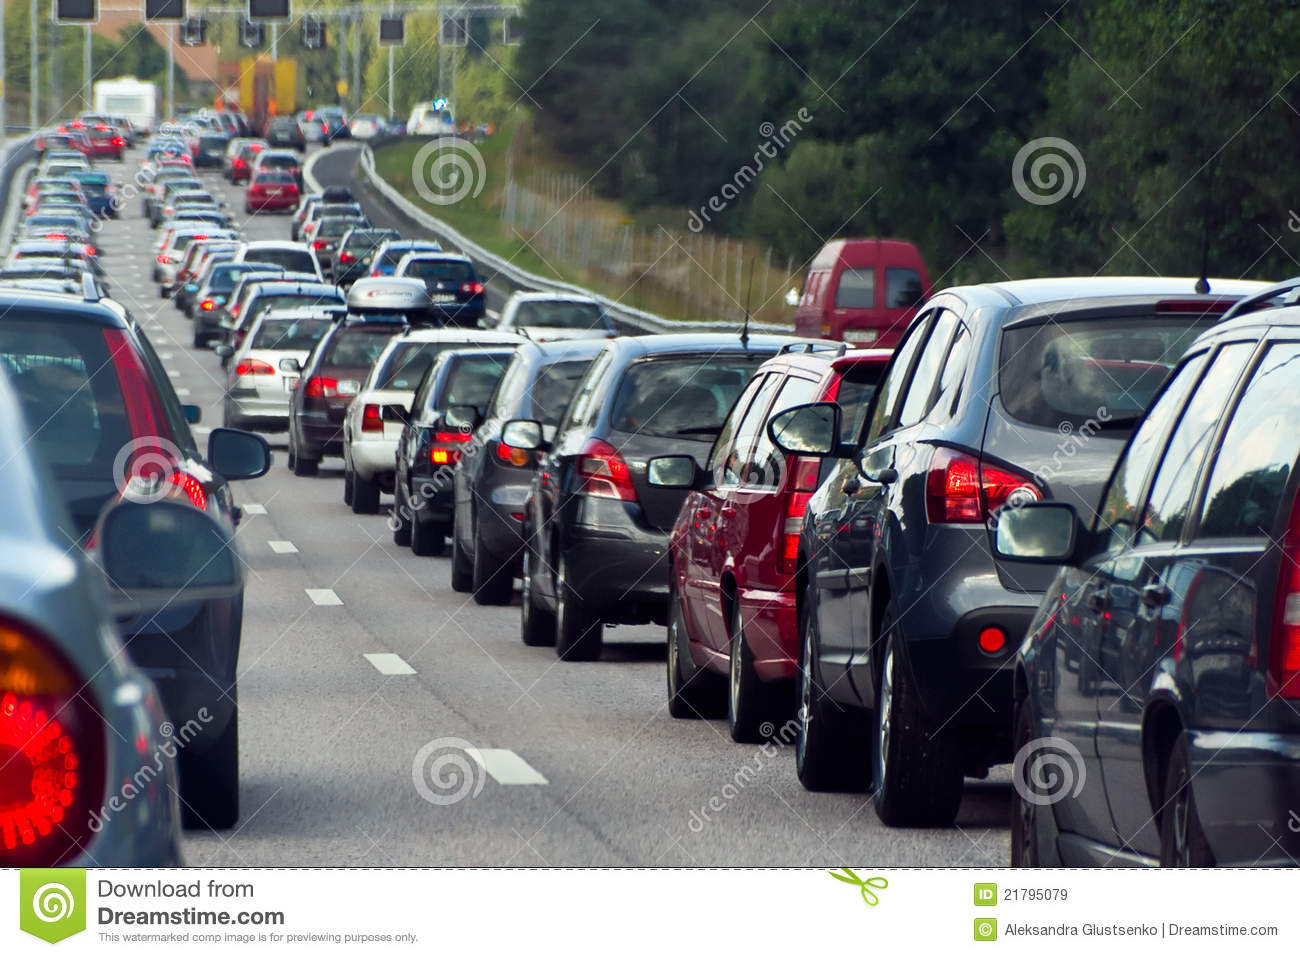 A Traffic Jam With Rows Of Cars Stock Image - Image of gasoline ...